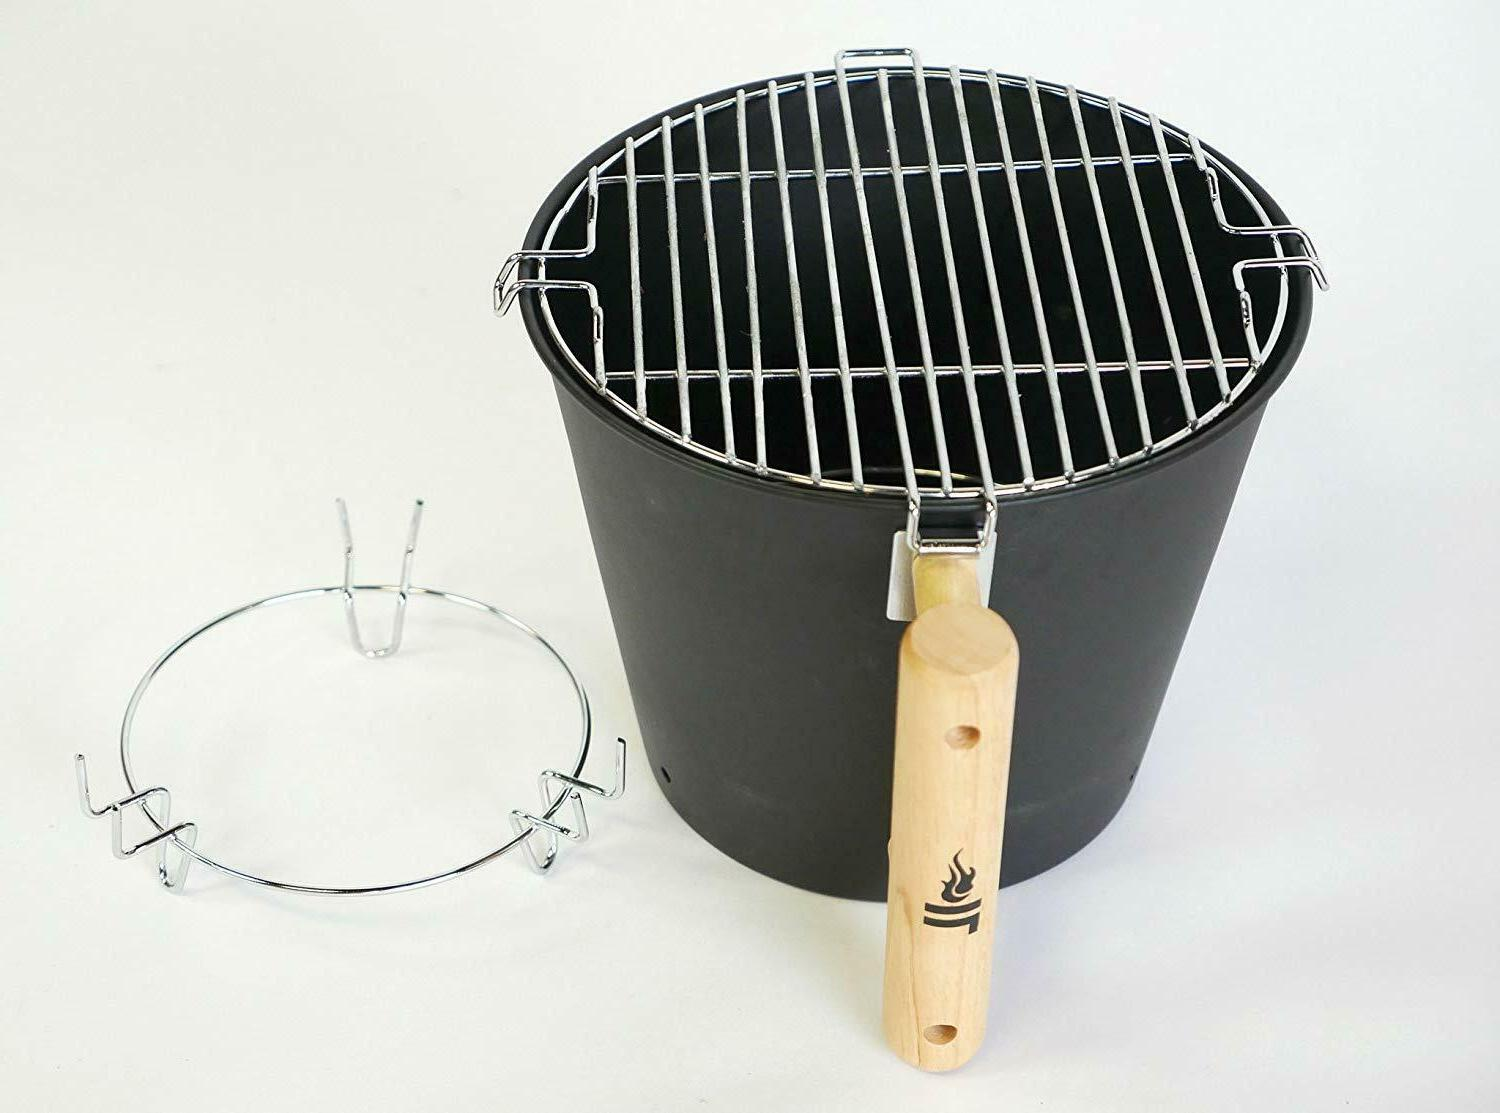 Outdoor Charcoal Grill For Cooking Grilling Grills